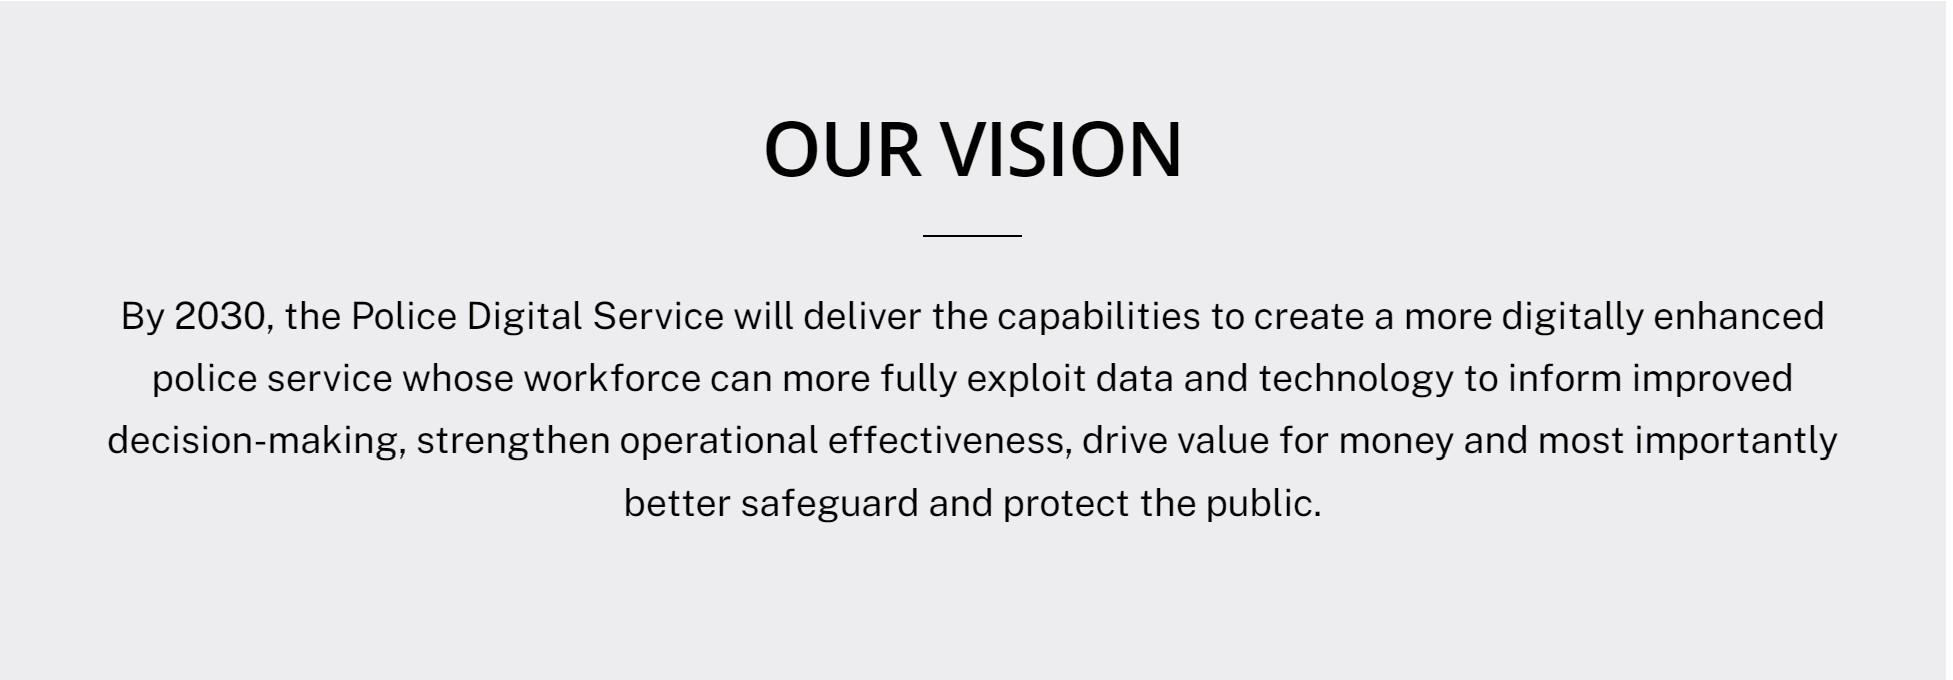 The Vision Statement for the police digital service states:  By 2030, the Police Digital Service will deliver the capabilities to create a more digitally enhanced police service whose workforce can more fully exploit data and technology to inform improved decision-making, strengthen operational effectiveness, drive value for money and most importantly better safeguard and protect the public.